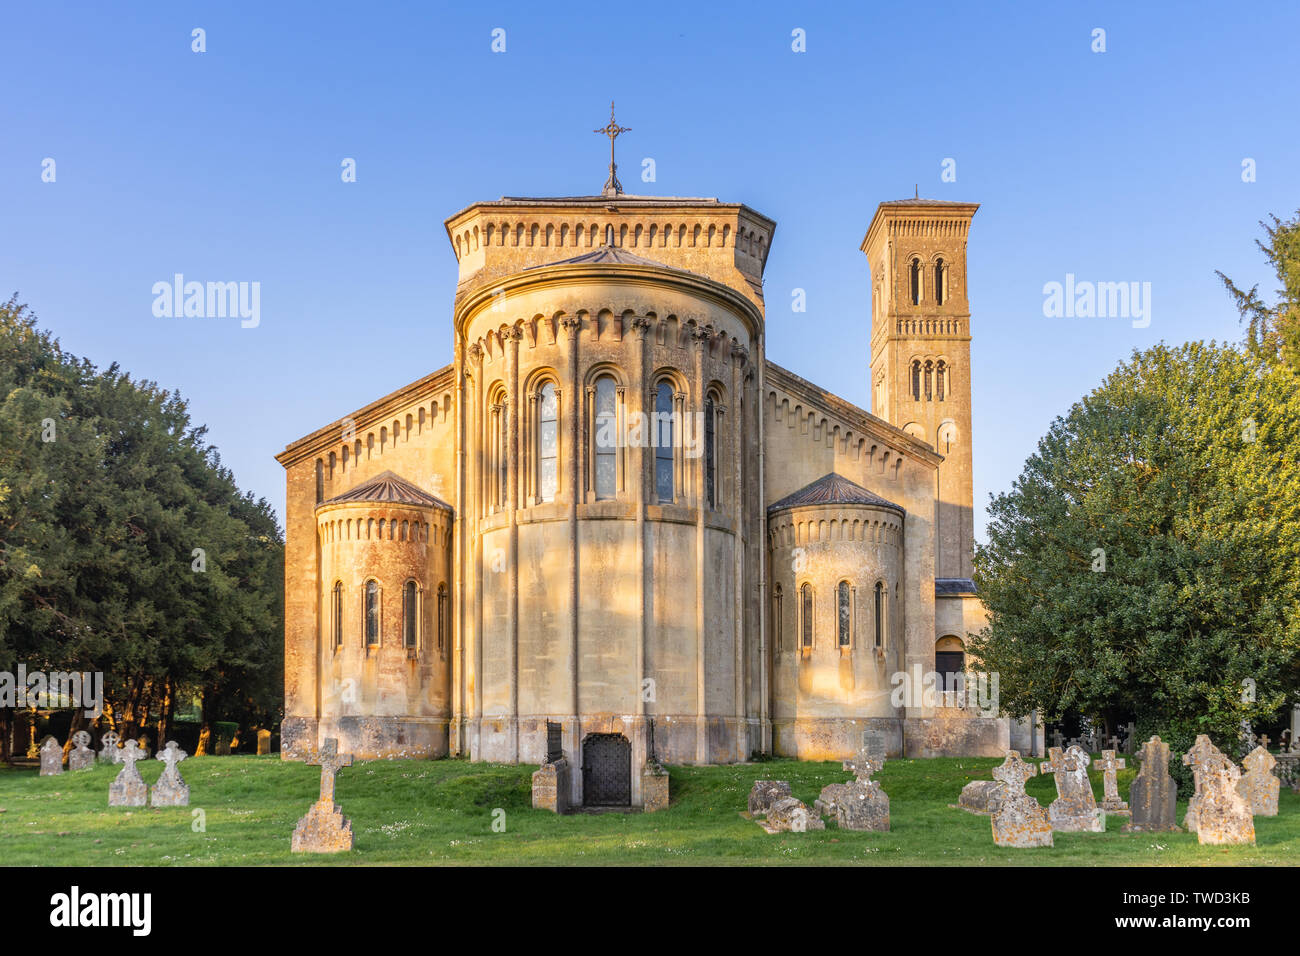 19th century St Mary and St Nicholas' parish church in Wilton built in Italianate Romanesque architecture, Wilton, Wiltshire, England, UK Stock Photo